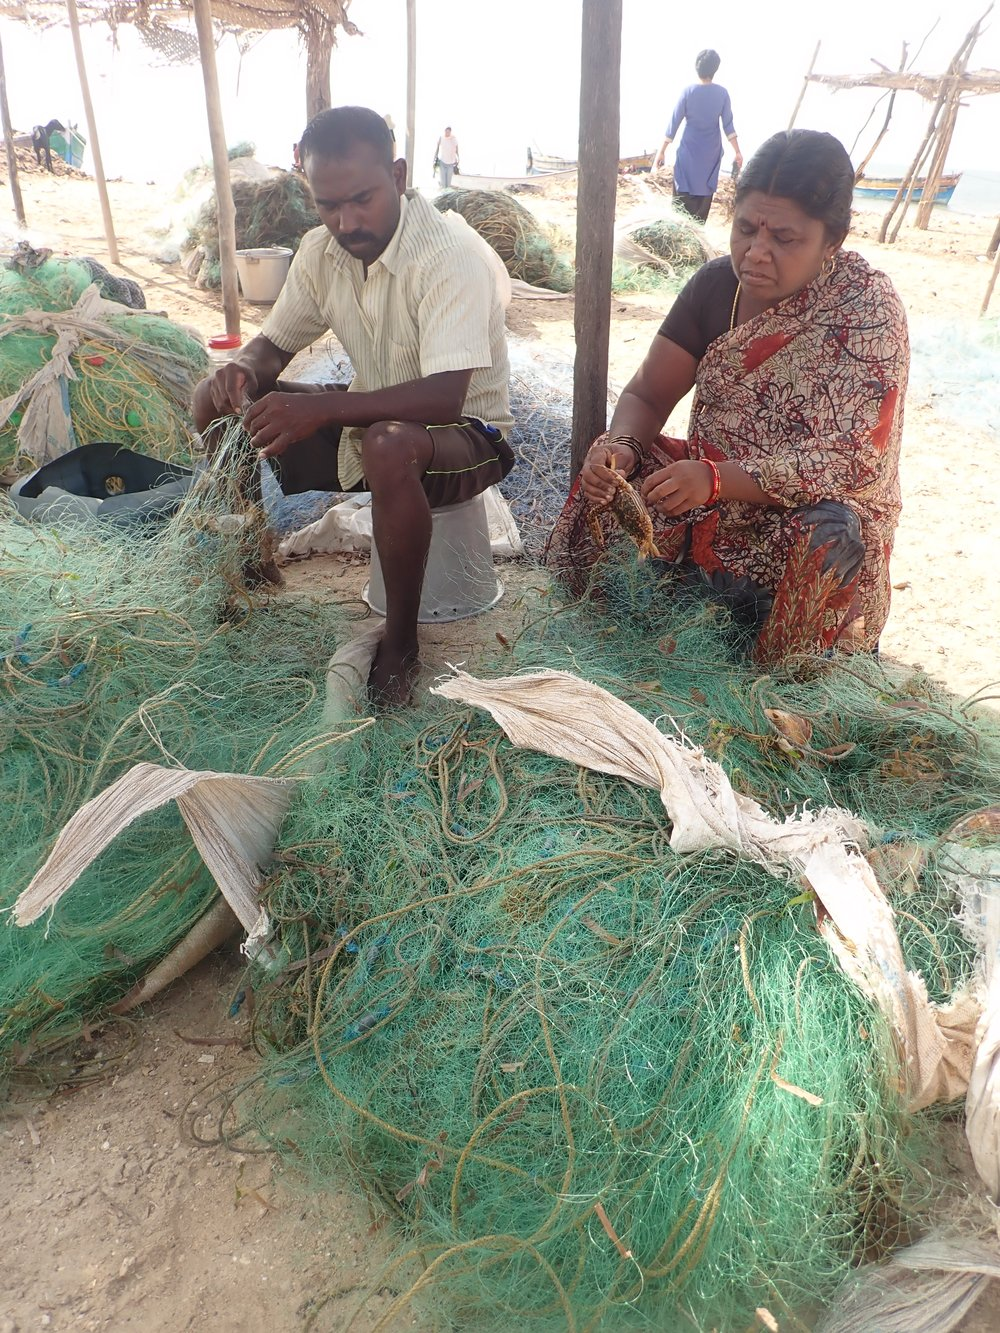 Crab gillnet fishery shore worker at Vellapatti (Tuticorin area), India. Photo by Amanda Vincent/Project Seahorse.